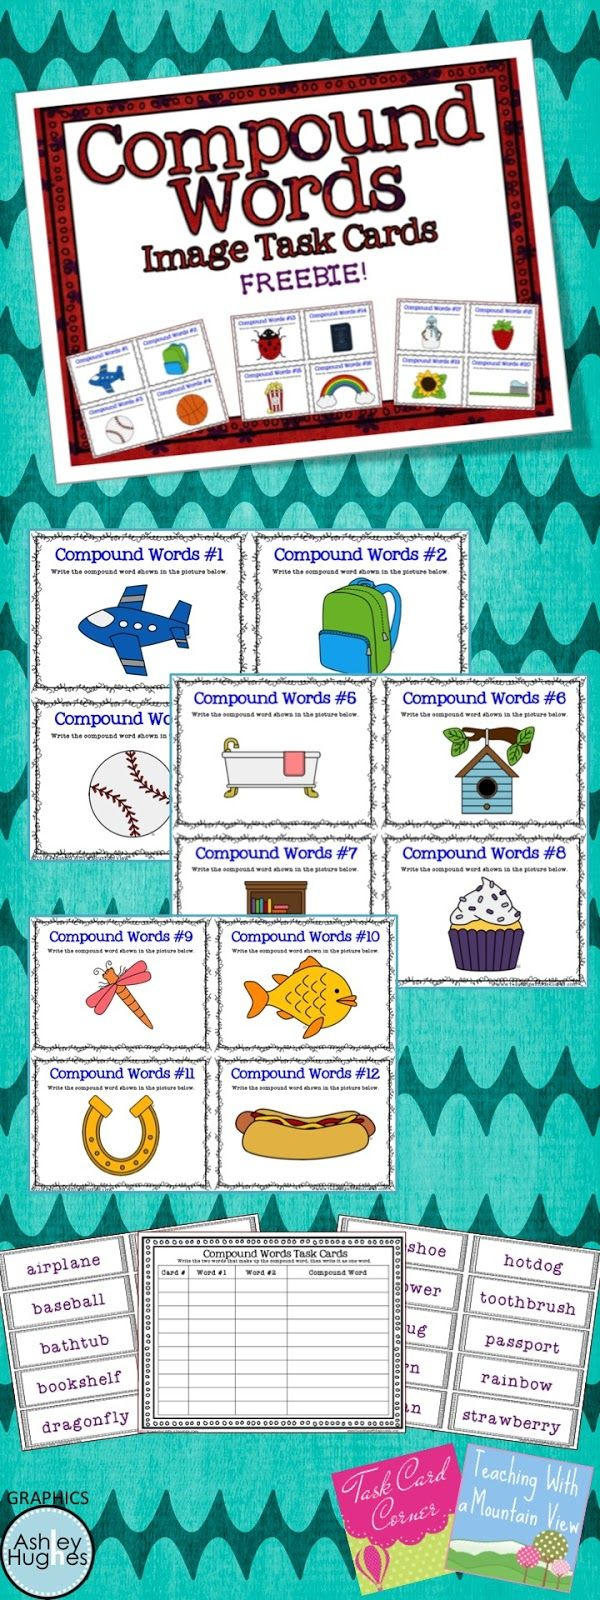 Classroom Freebies Too Is More Freebies For More Teachers Compound Words Task Cards Compound Words Activities [ 1600 x 600 Pixel ]